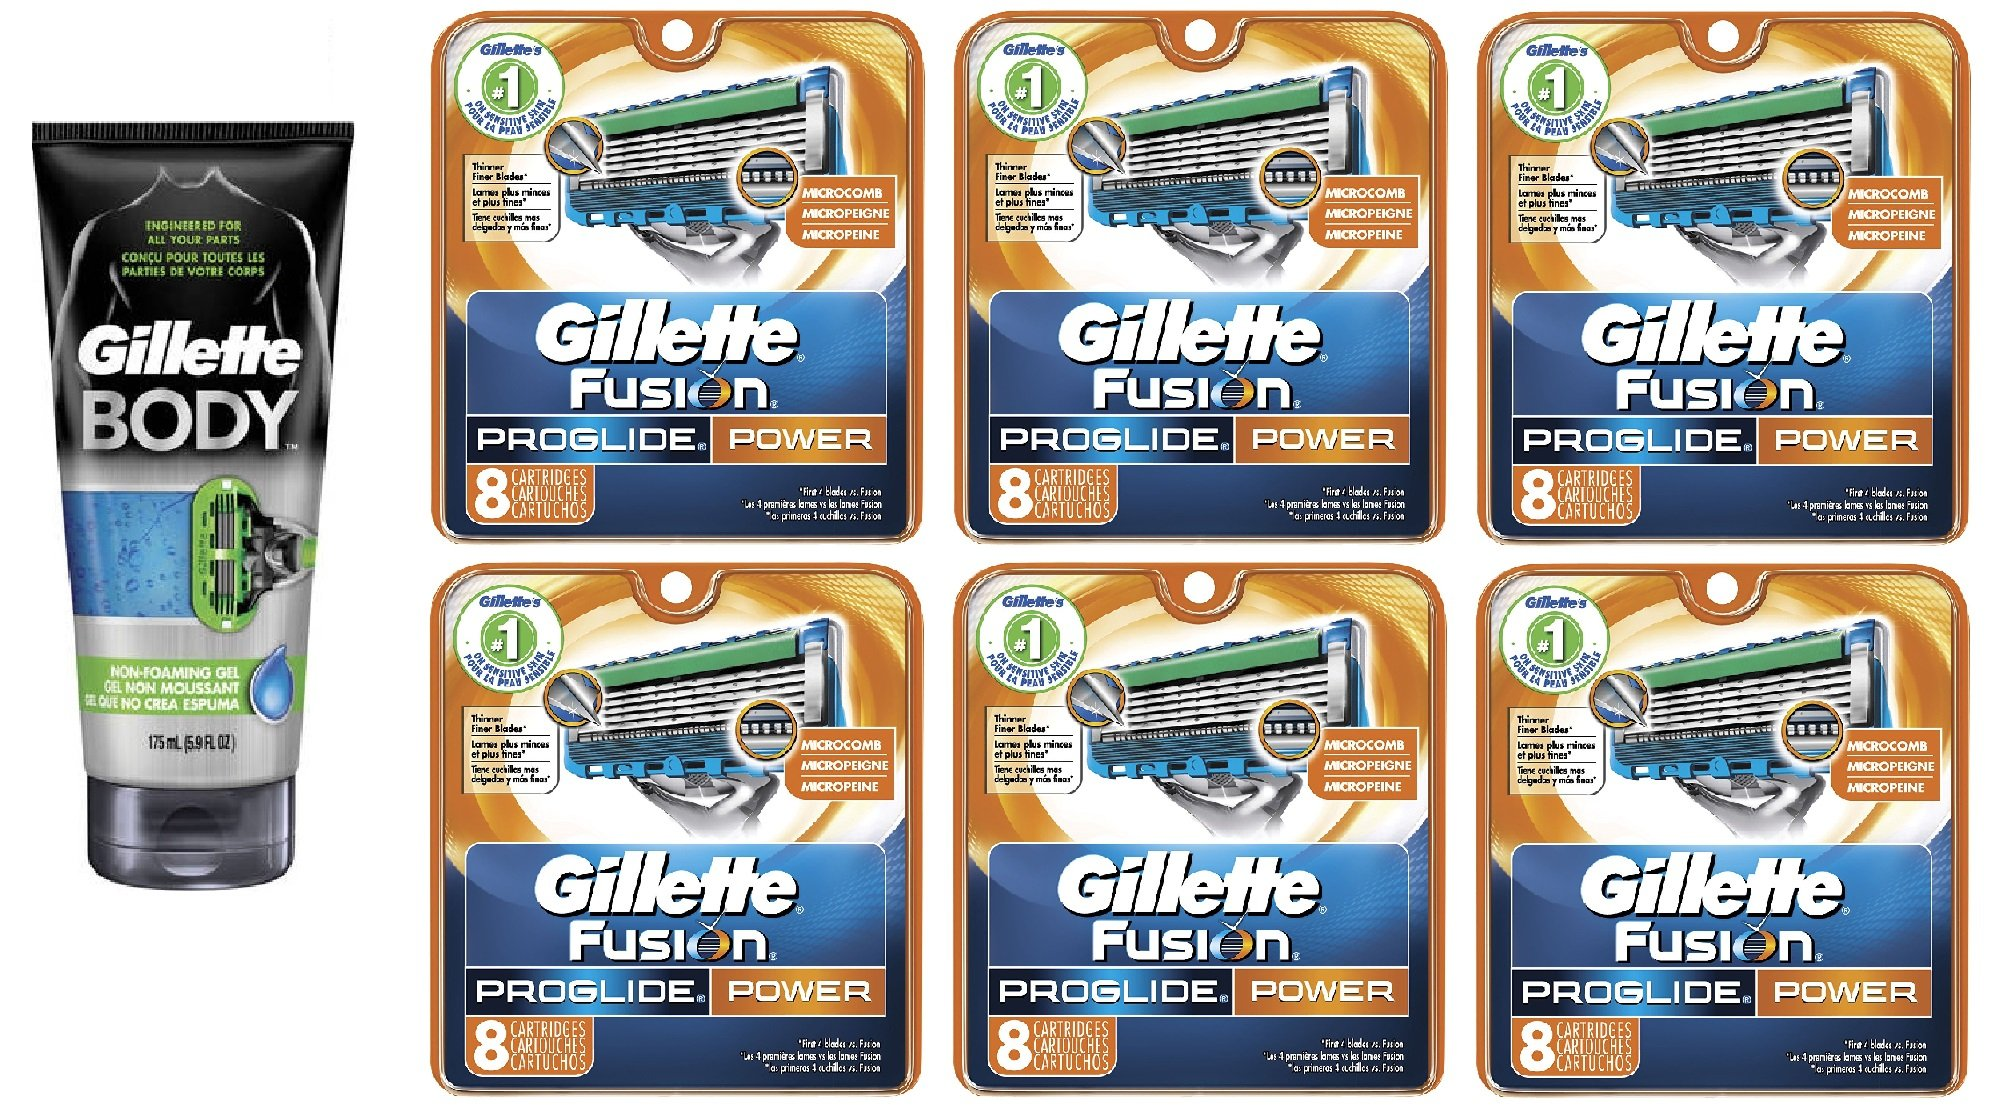 Gillette Body Non Foaming Shave Gel for Men, 5.9 Fl Oz + Fusion Proglide Power Refill Blades 8 Ct (6 Pack) + FREE Luxury Luffa Loofah Bath Sponge On A Rope, Color May Vary